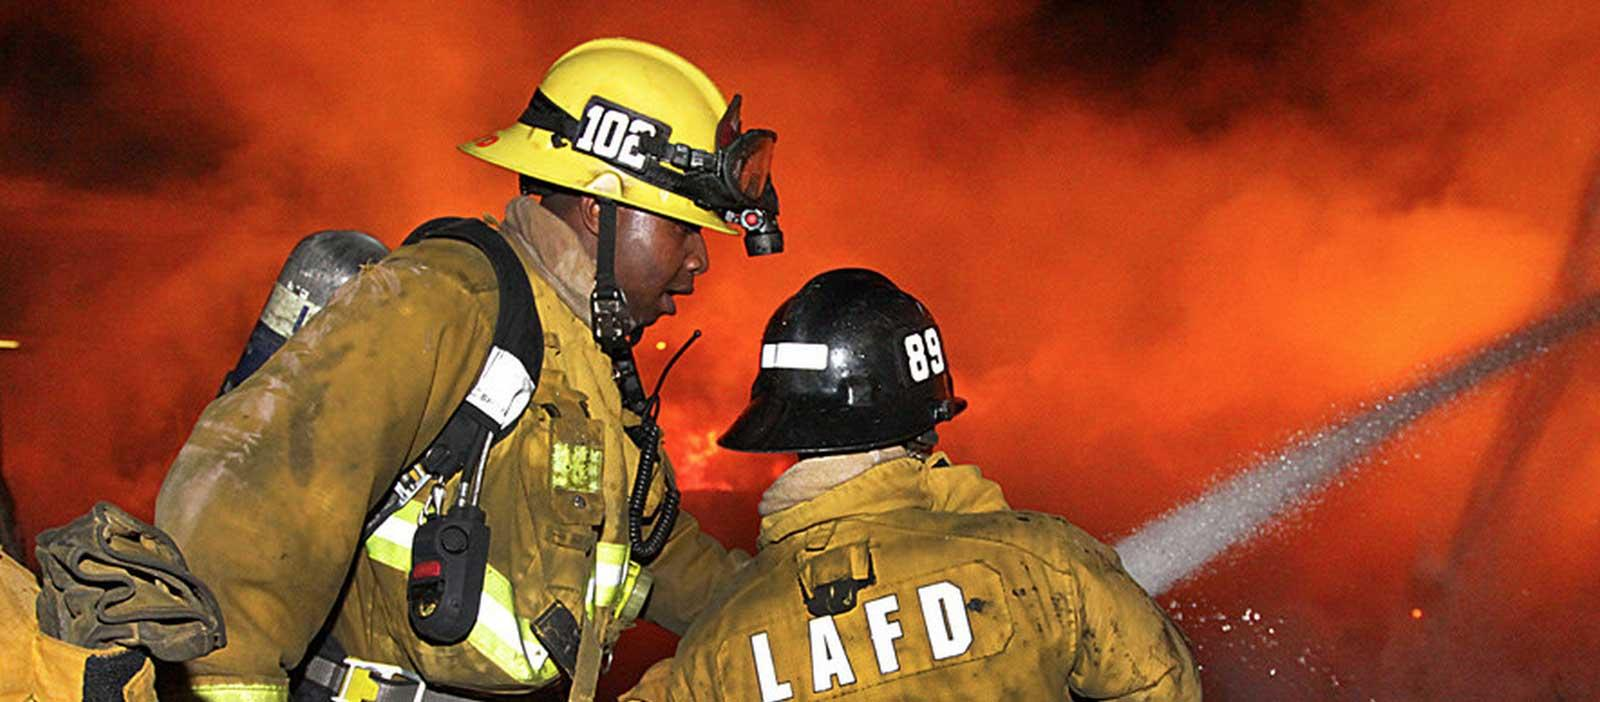 LAFD Fire Fighting